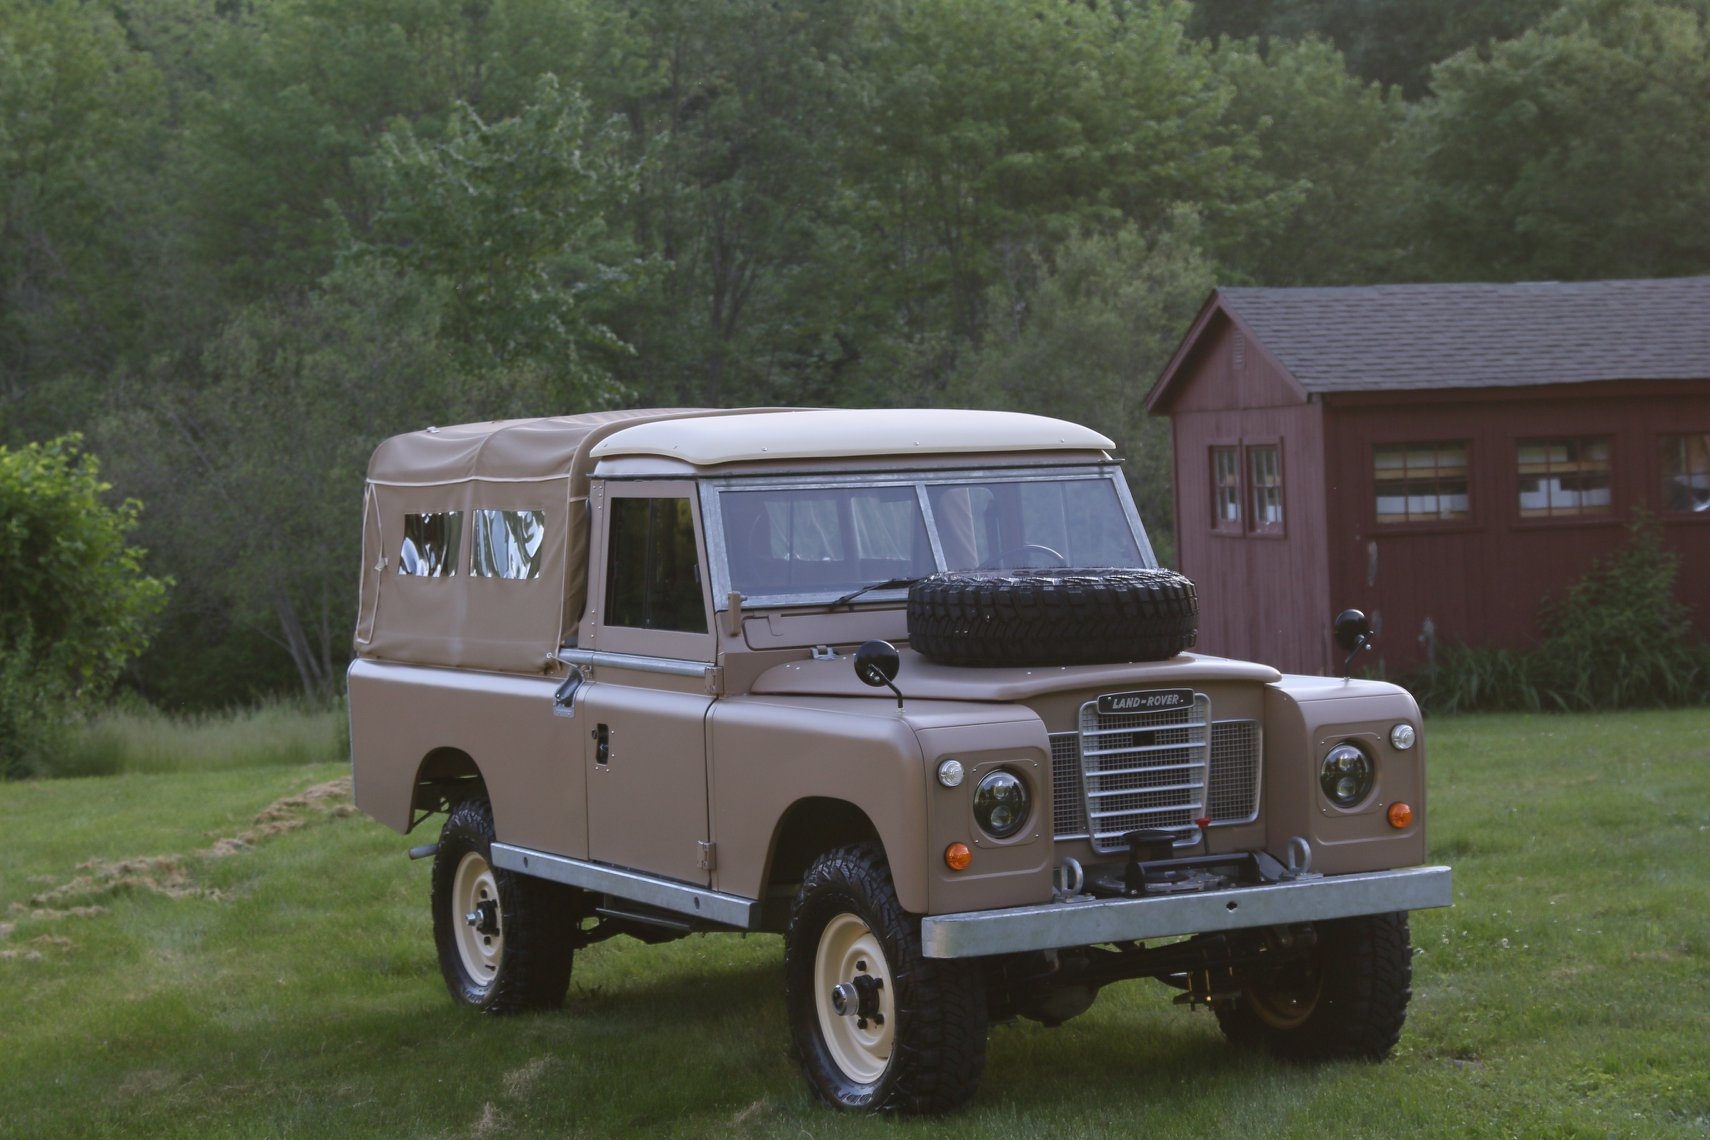 1972 Land Rover Series II 109 Inch Pickup Restoration Photo j